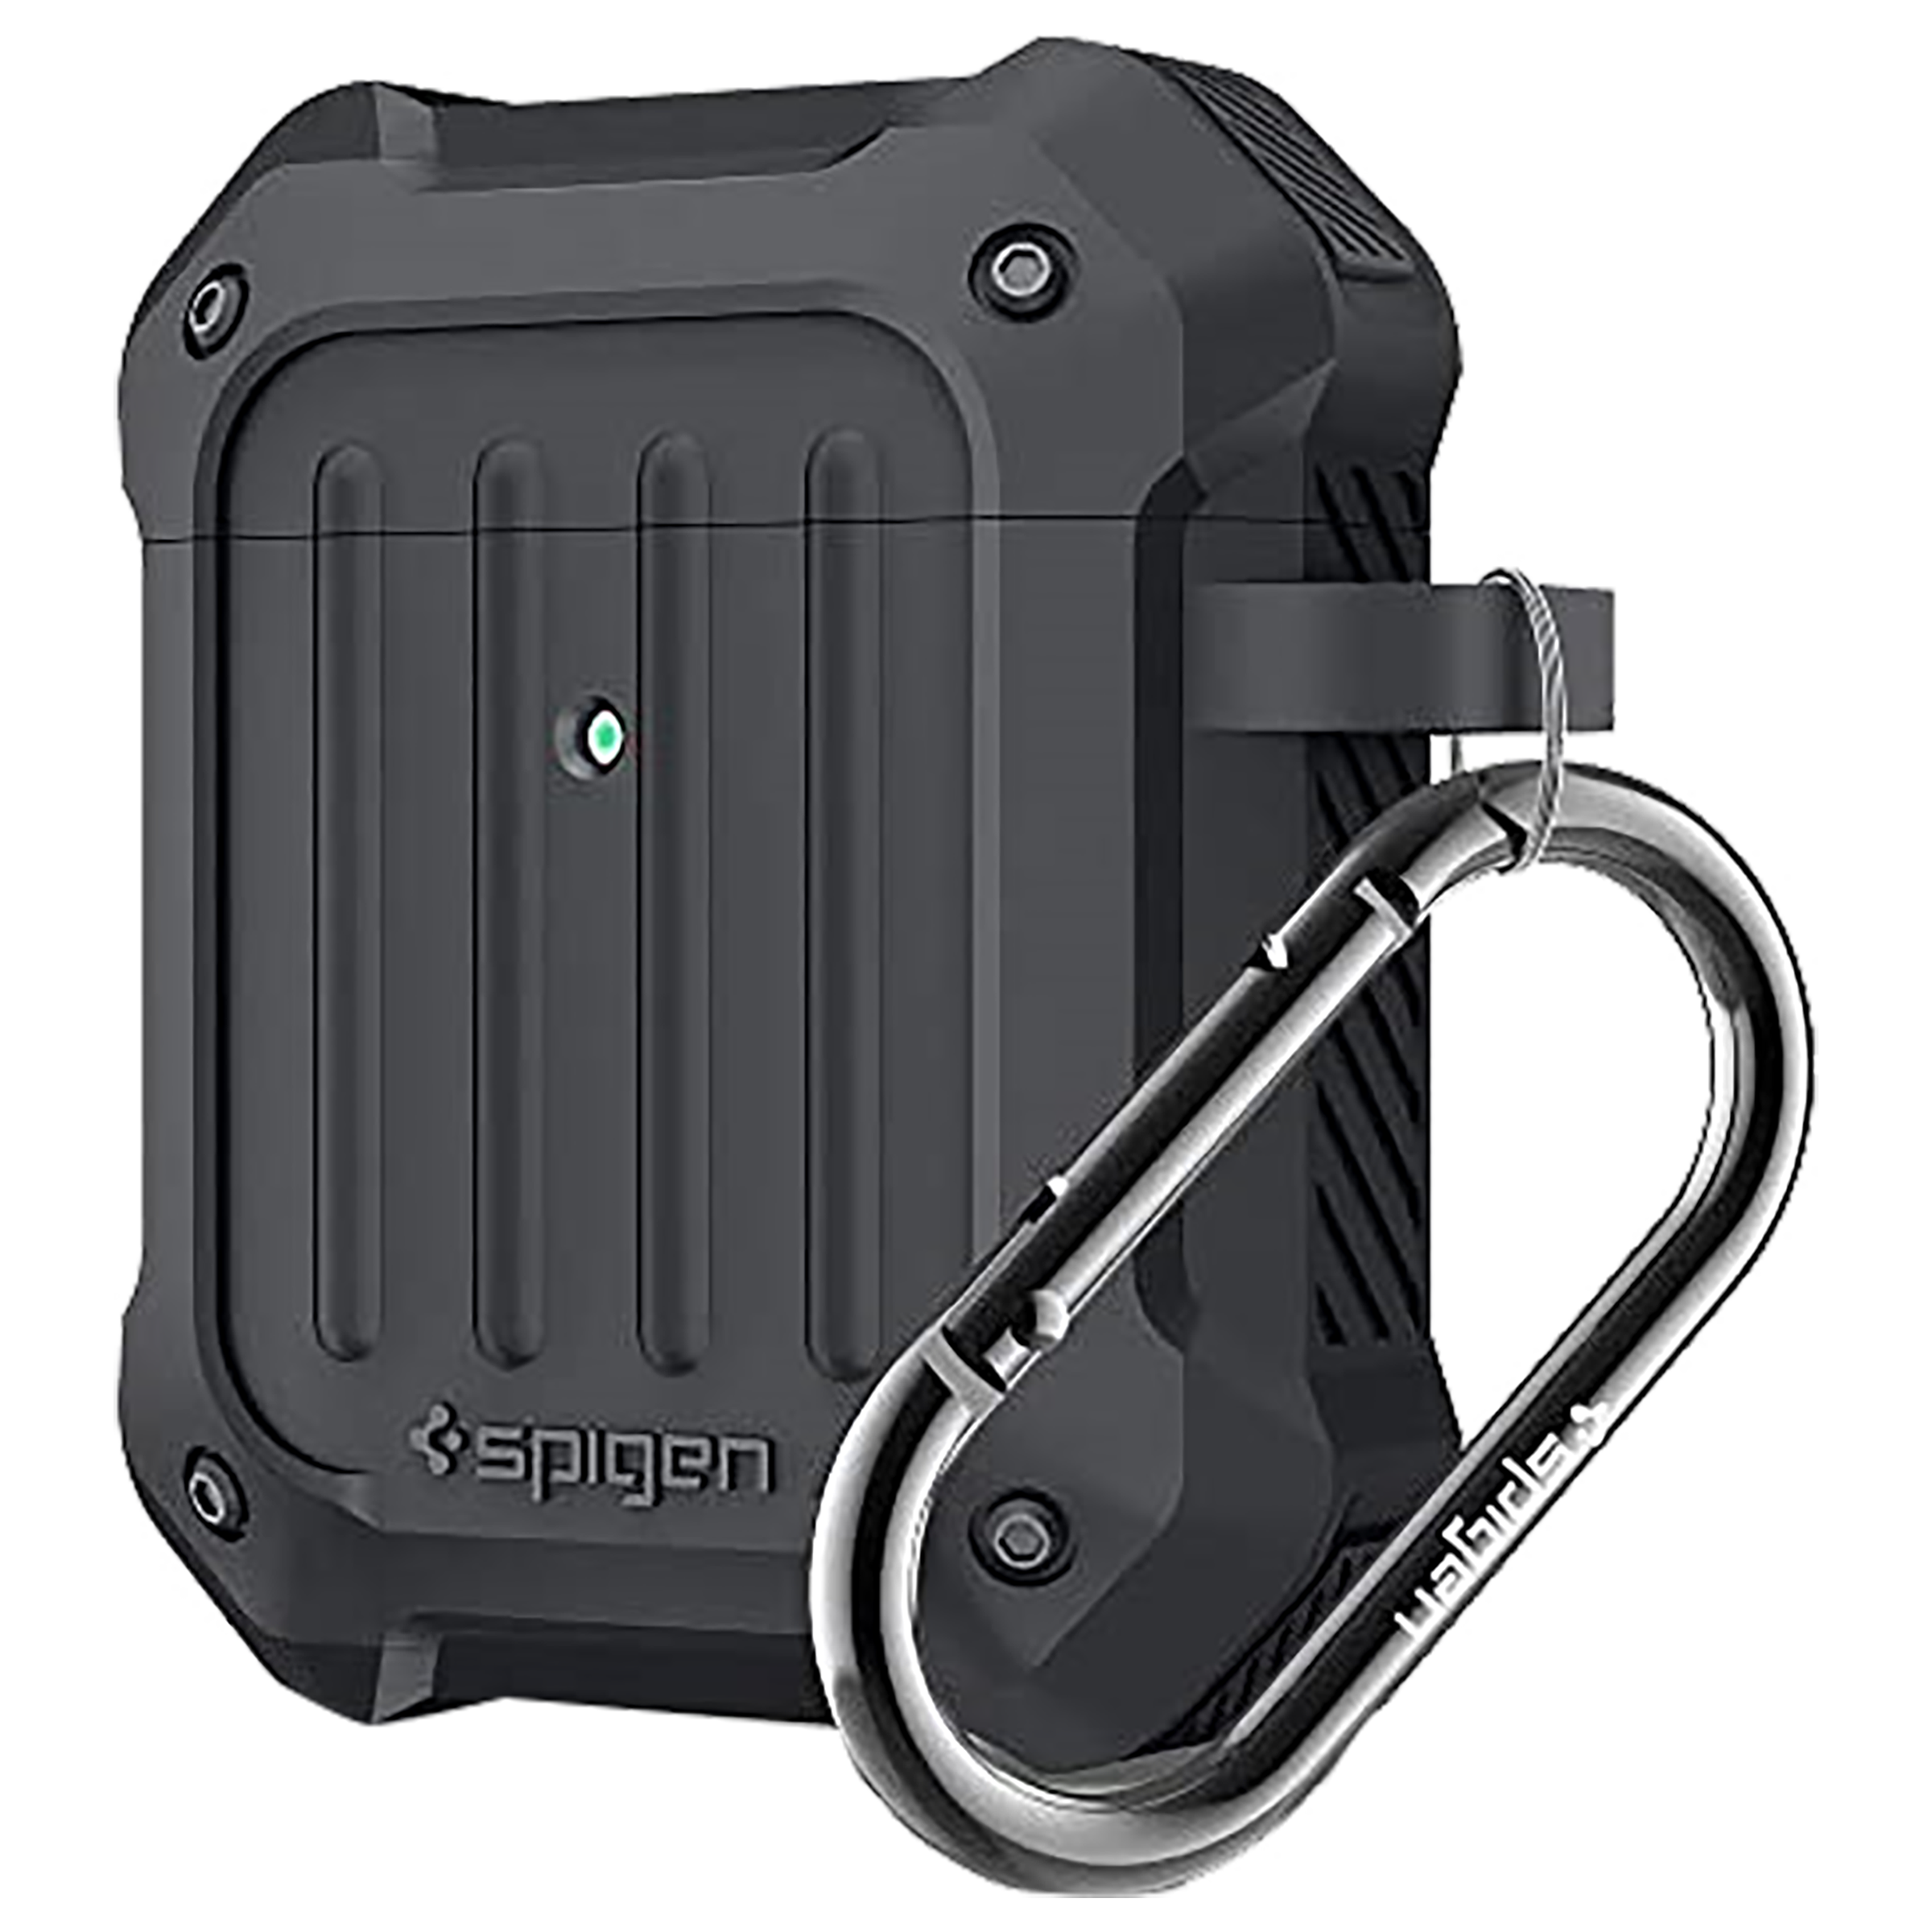 Spigen Tough Armor Silicone Full Cover Case For Apple Airpods 1/Airpods 2 (Rugged Design For Daily Scratch Defense, 074CS26498, Charcoal)_1